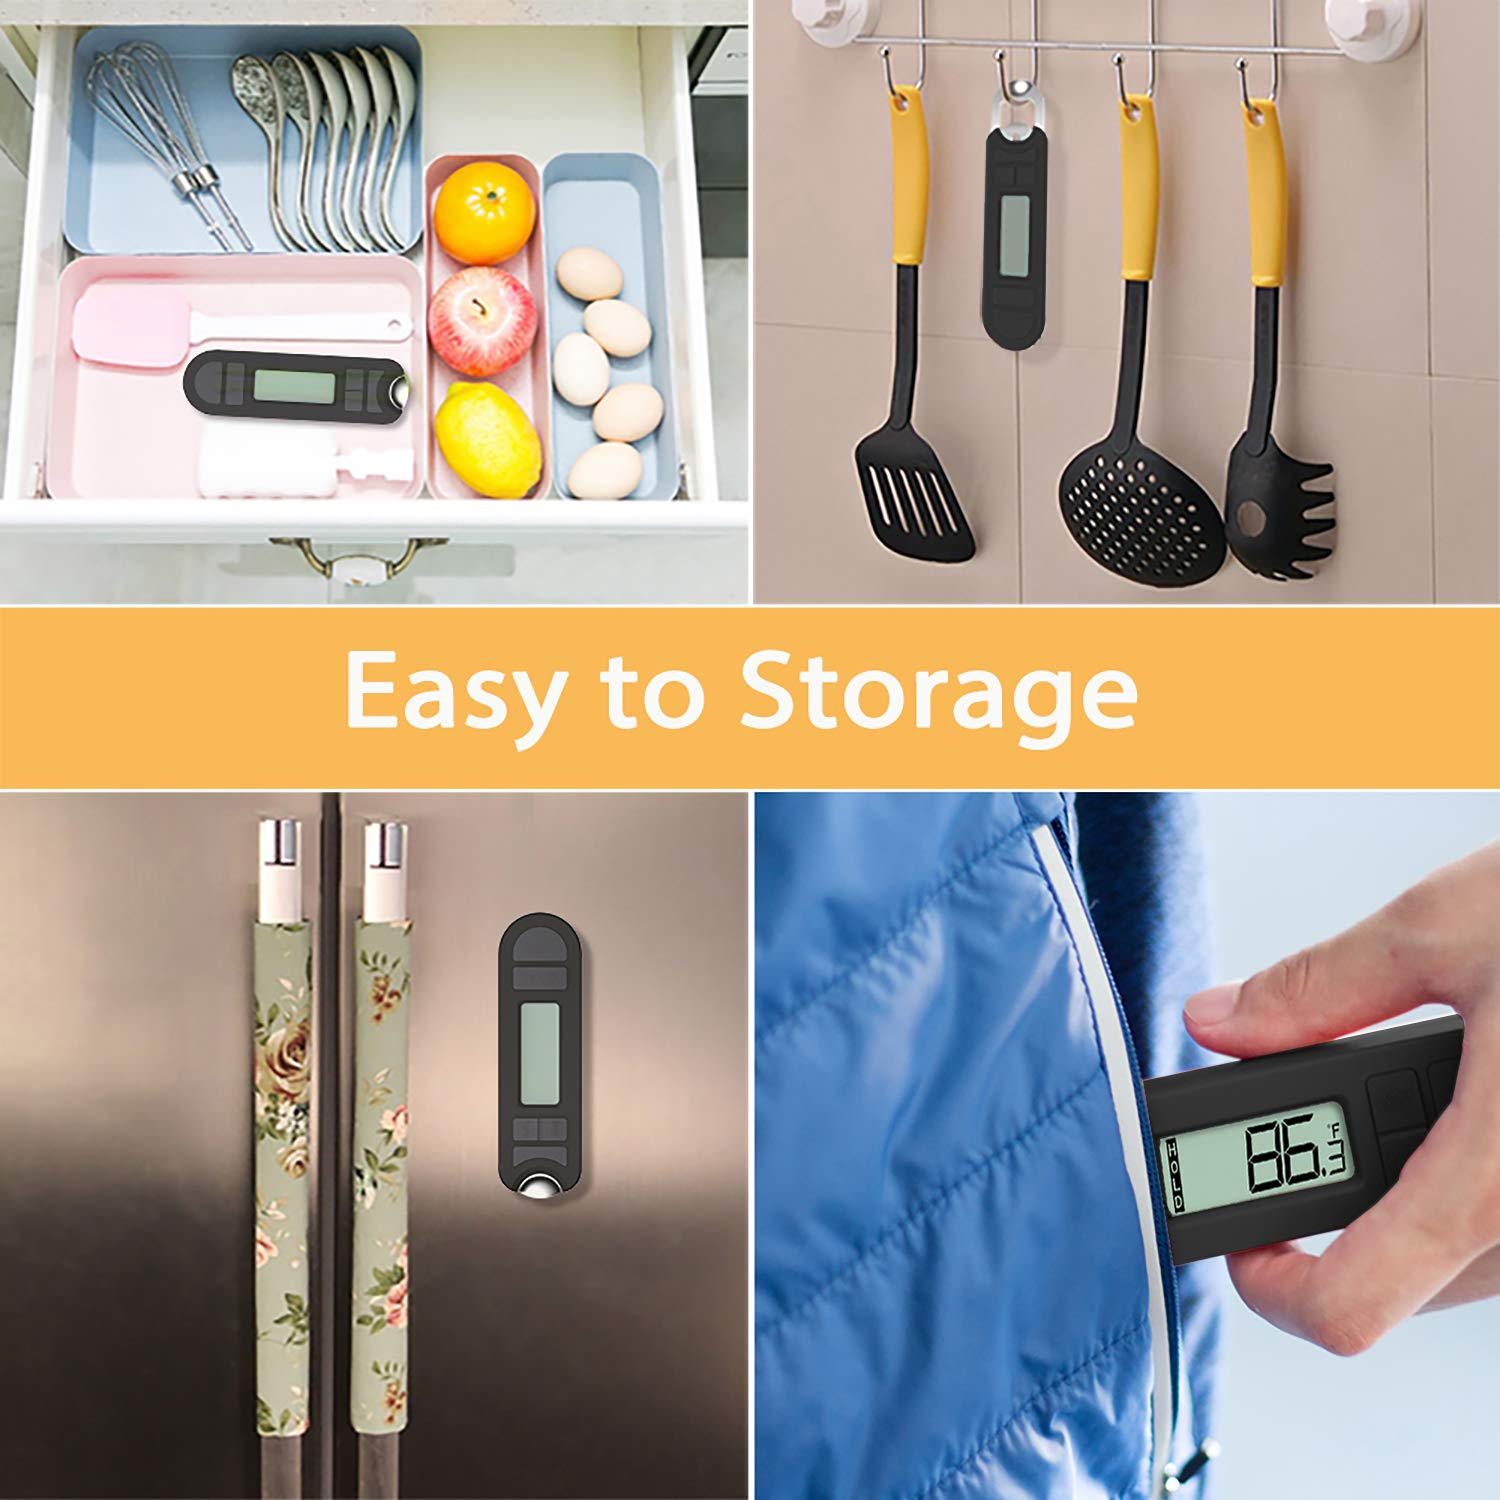 Household Thermometer Set (Non-contact Digital Laser Infrared Thermometer Gun, Dial Oven Thermometer, Dial Fridge Fridge Thermometer, Digital Pocket Foldable Probe Meat Thermometer) by ElephanTrans